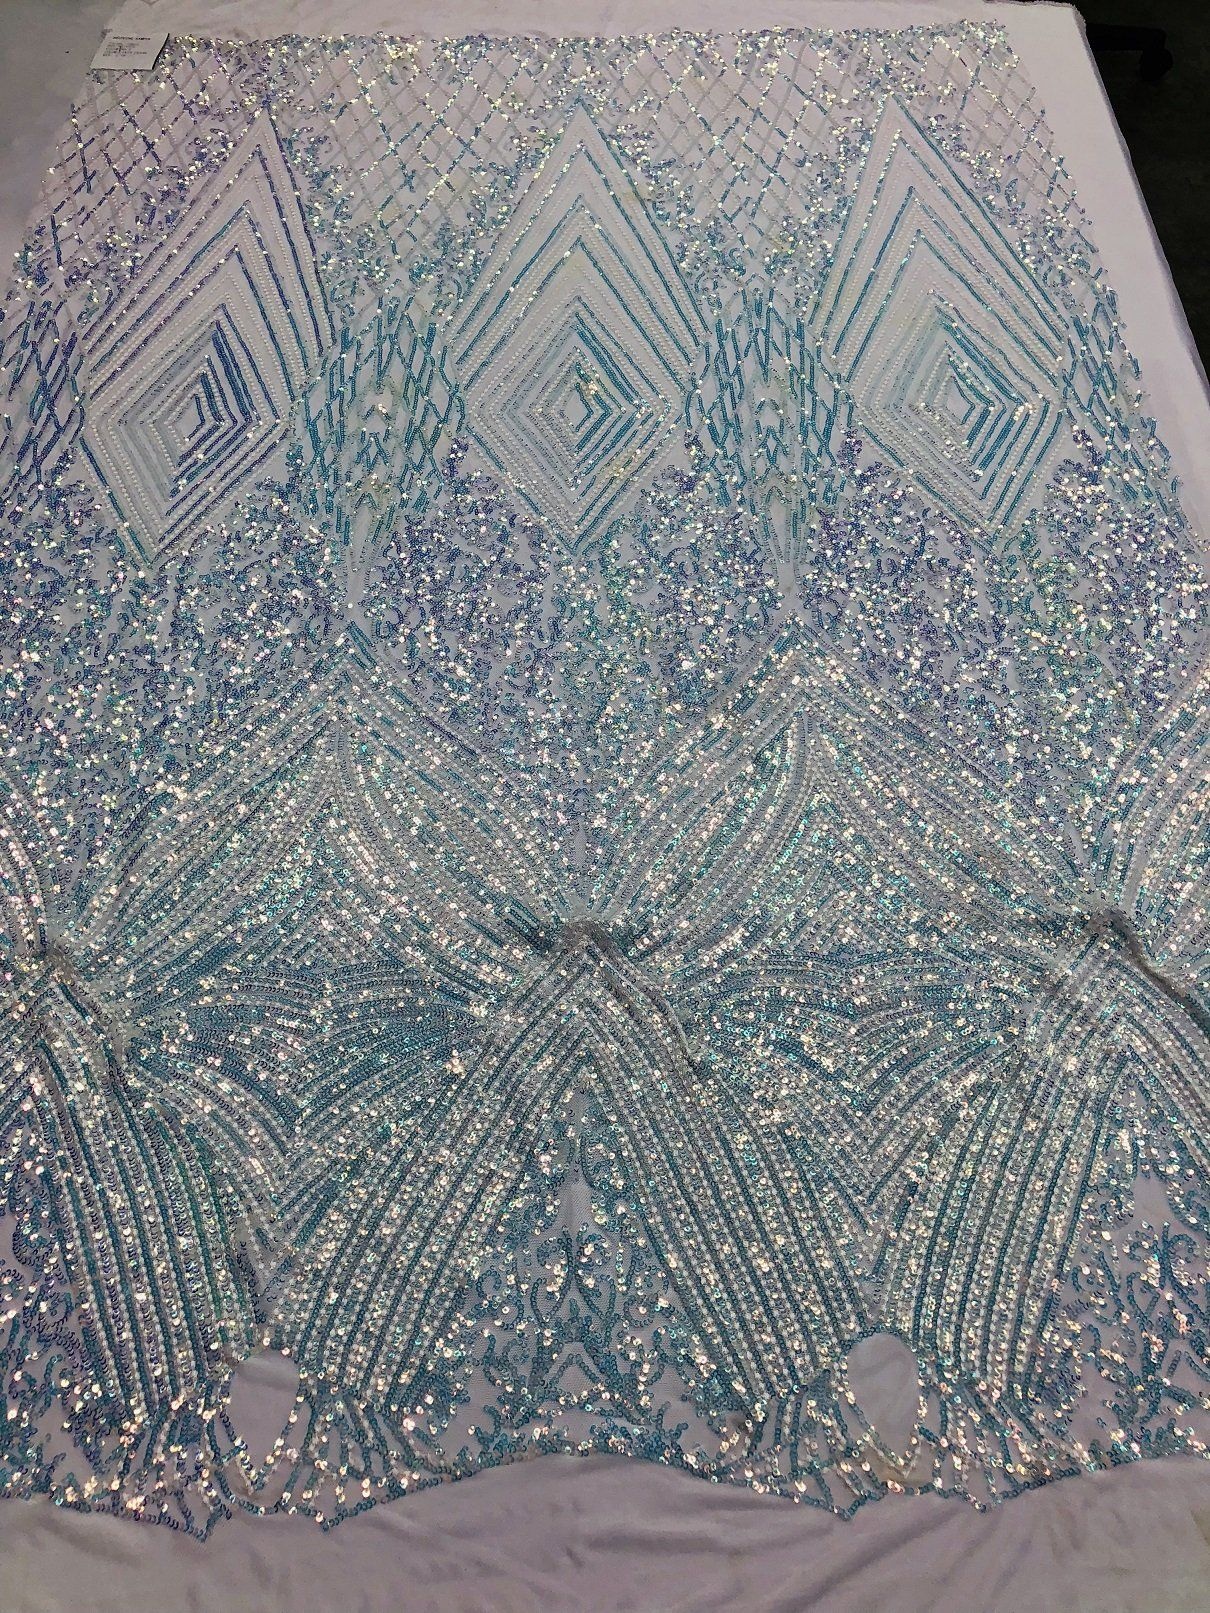 4 Way Stretch Sequins Fabric Iridescent Lilac Mesh Lace Fabric Prom-Gown 1Yard